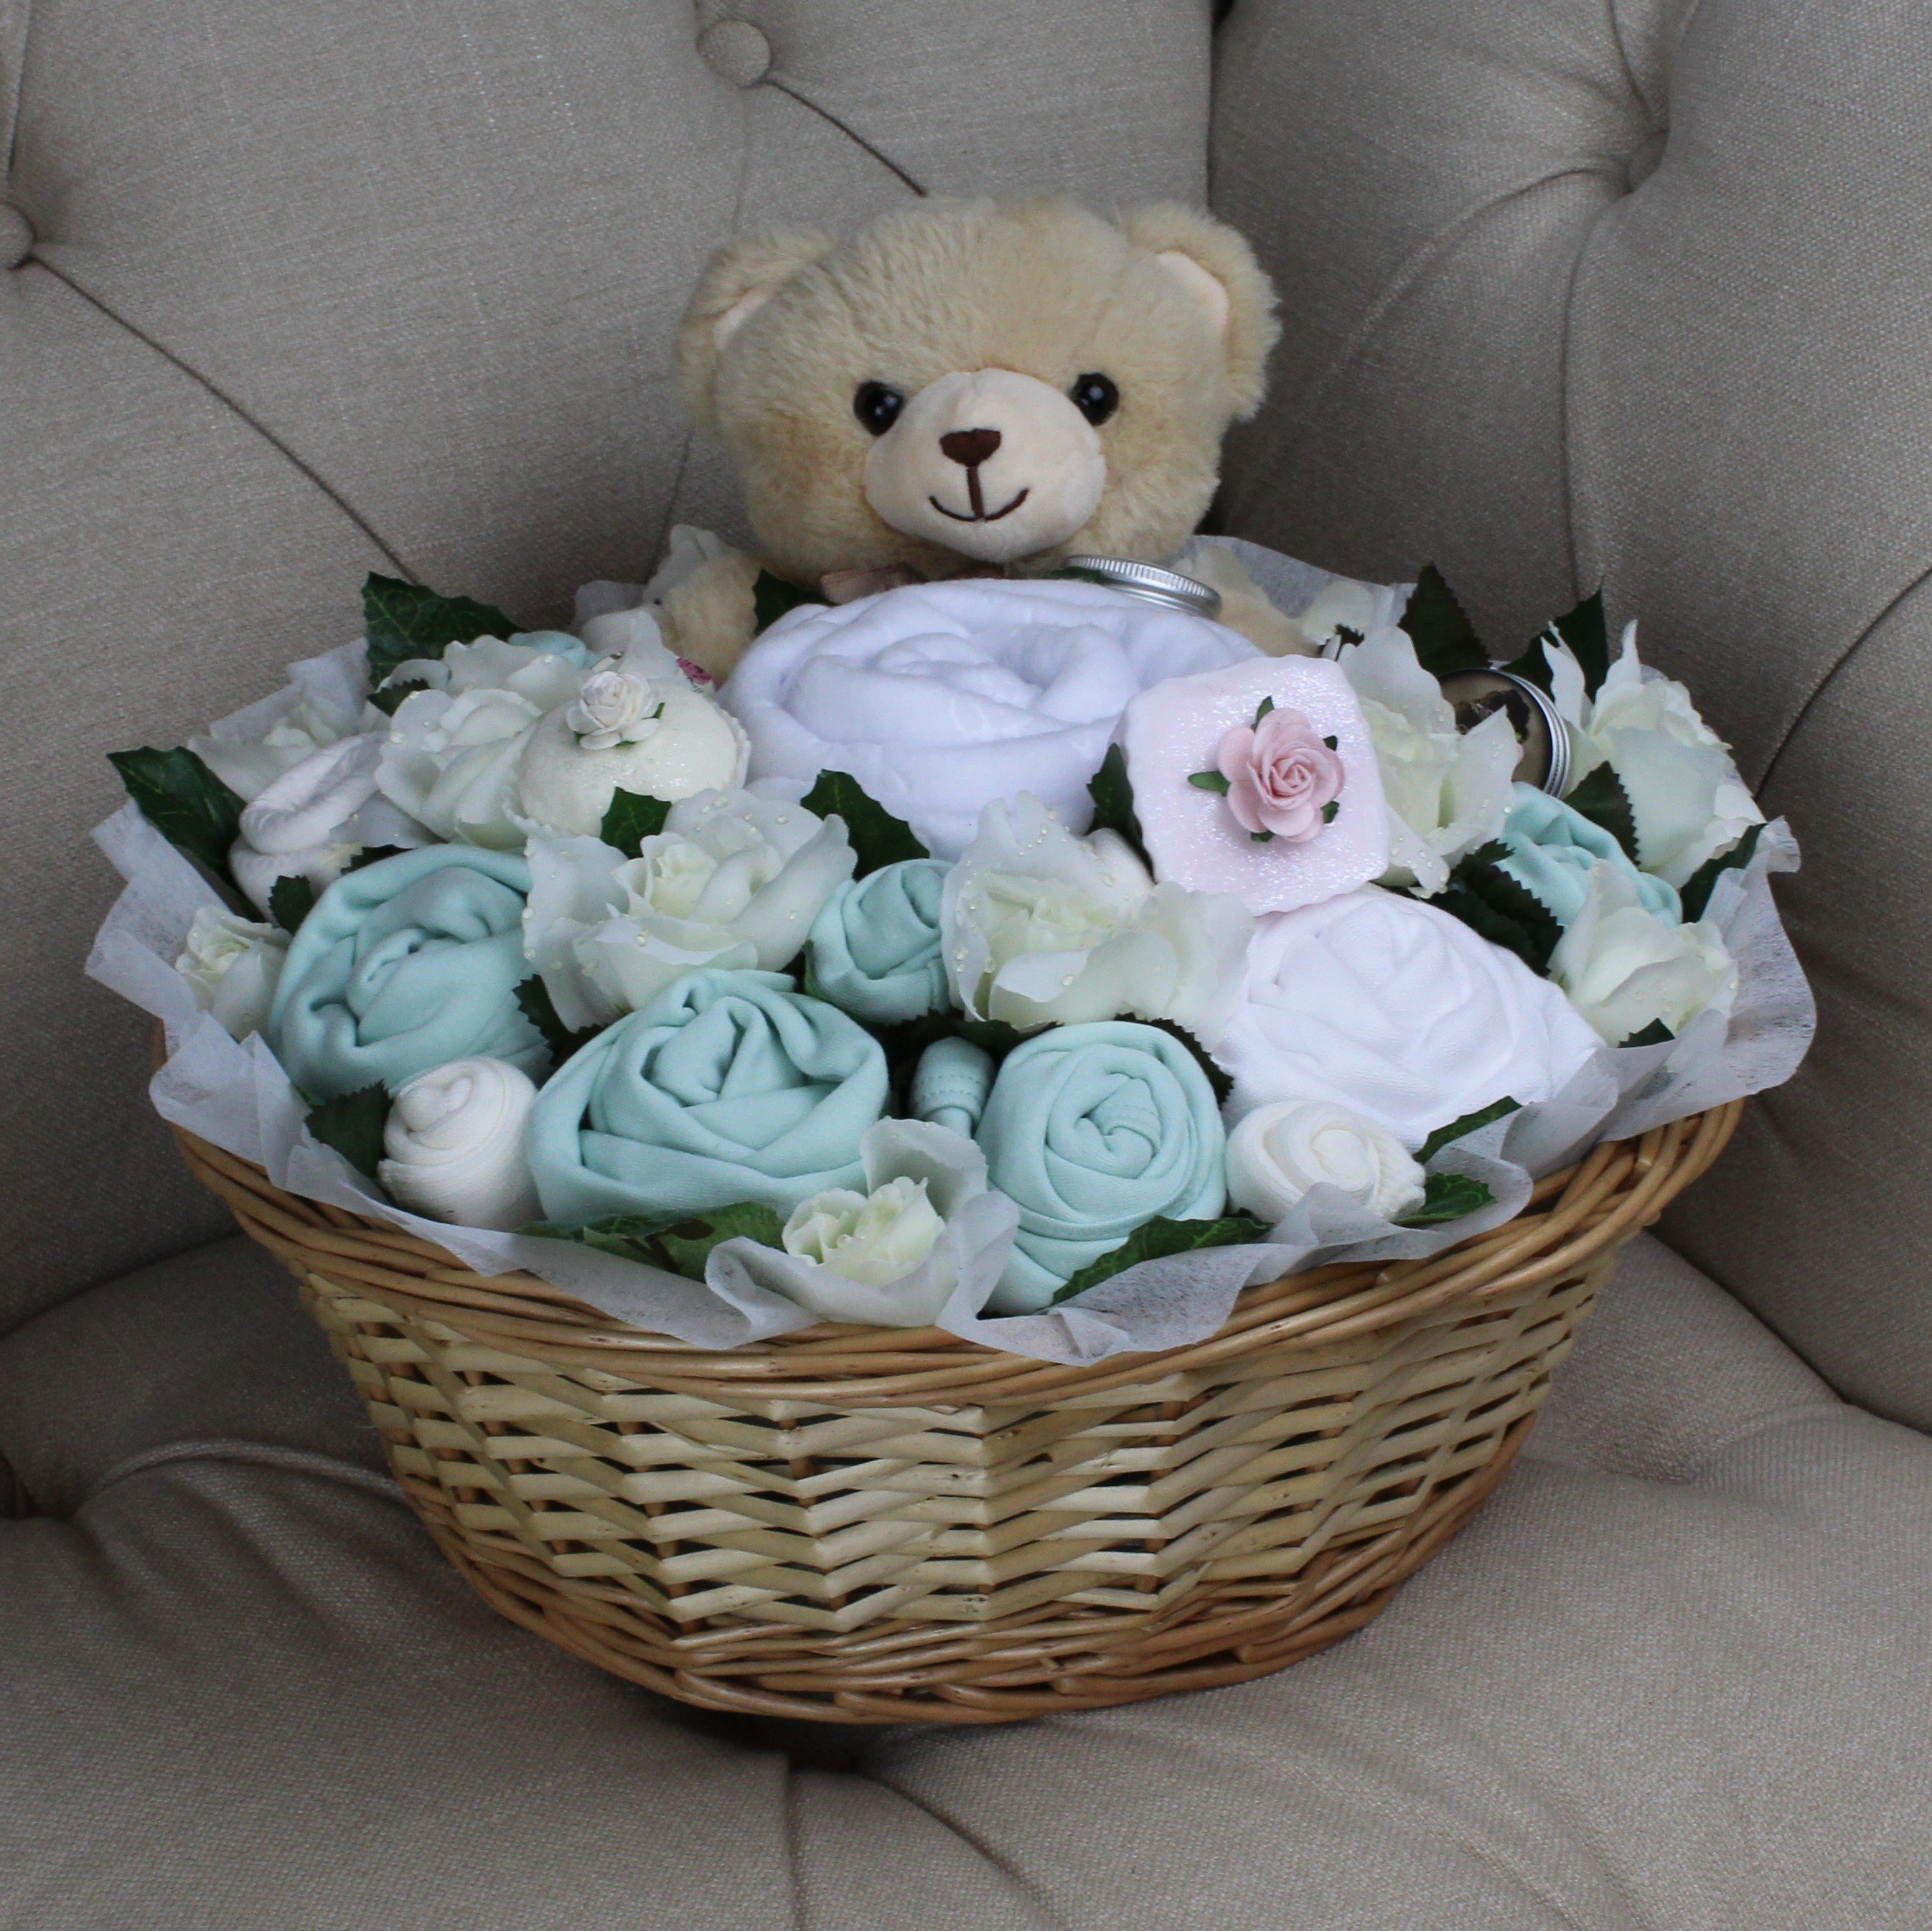 Luxurious Pampering Bouquet Mint - Baby Clothes Bouquet